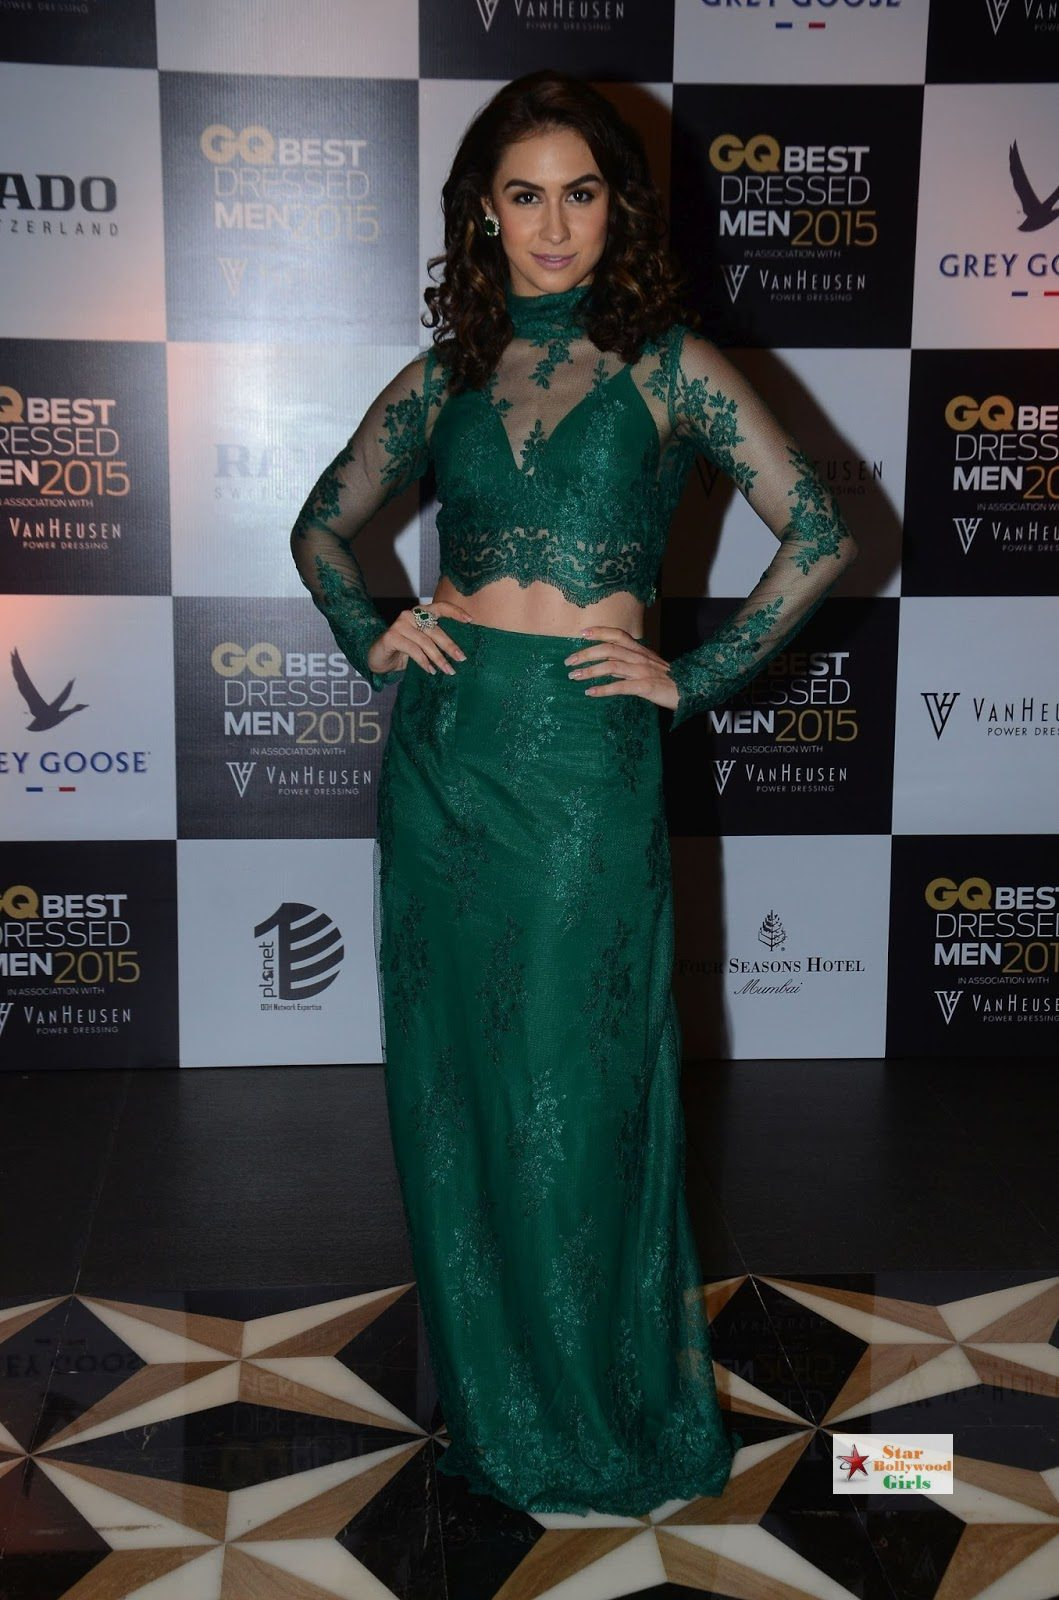 Super Sexy Bollywood Female Celebrities At The GQ Best Dressed Men 2015 Event At Four Seasons Hotel4